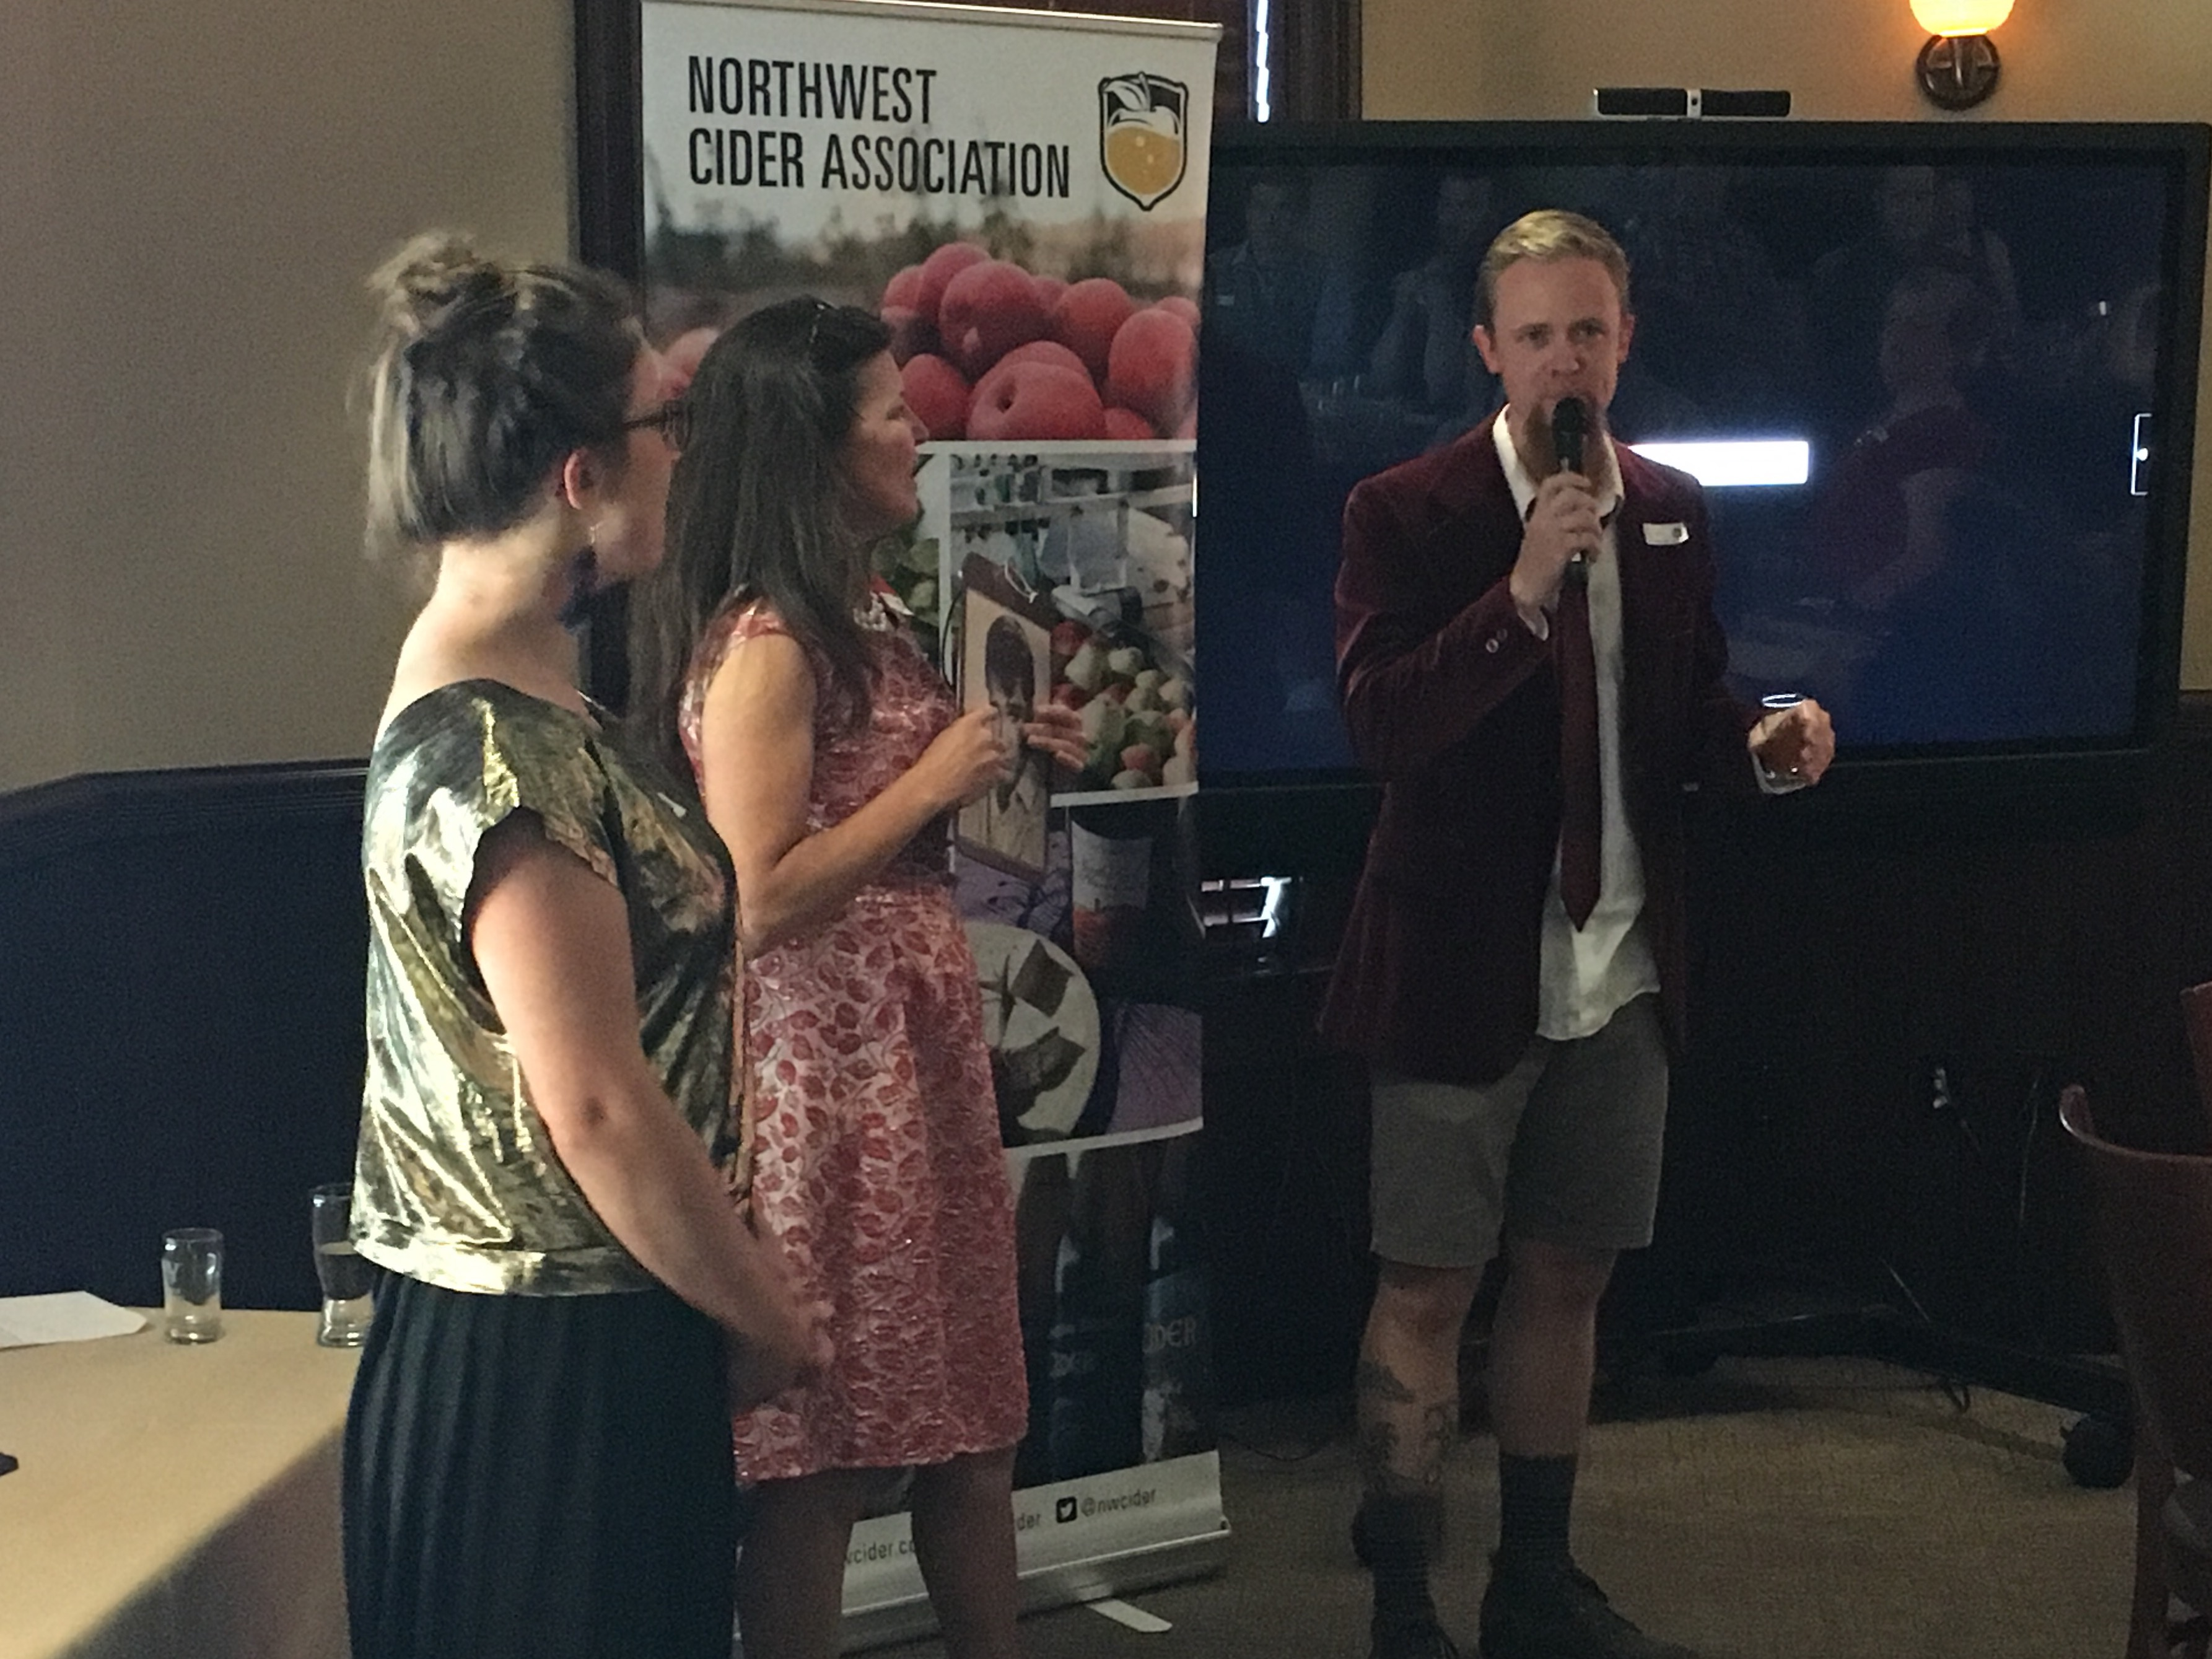 Rev. Nat talking during the Portland International Cider Cup Awards while NW Cider Executive Director Emily Ritchie (left) and Carolyn Winkler (center) look on.